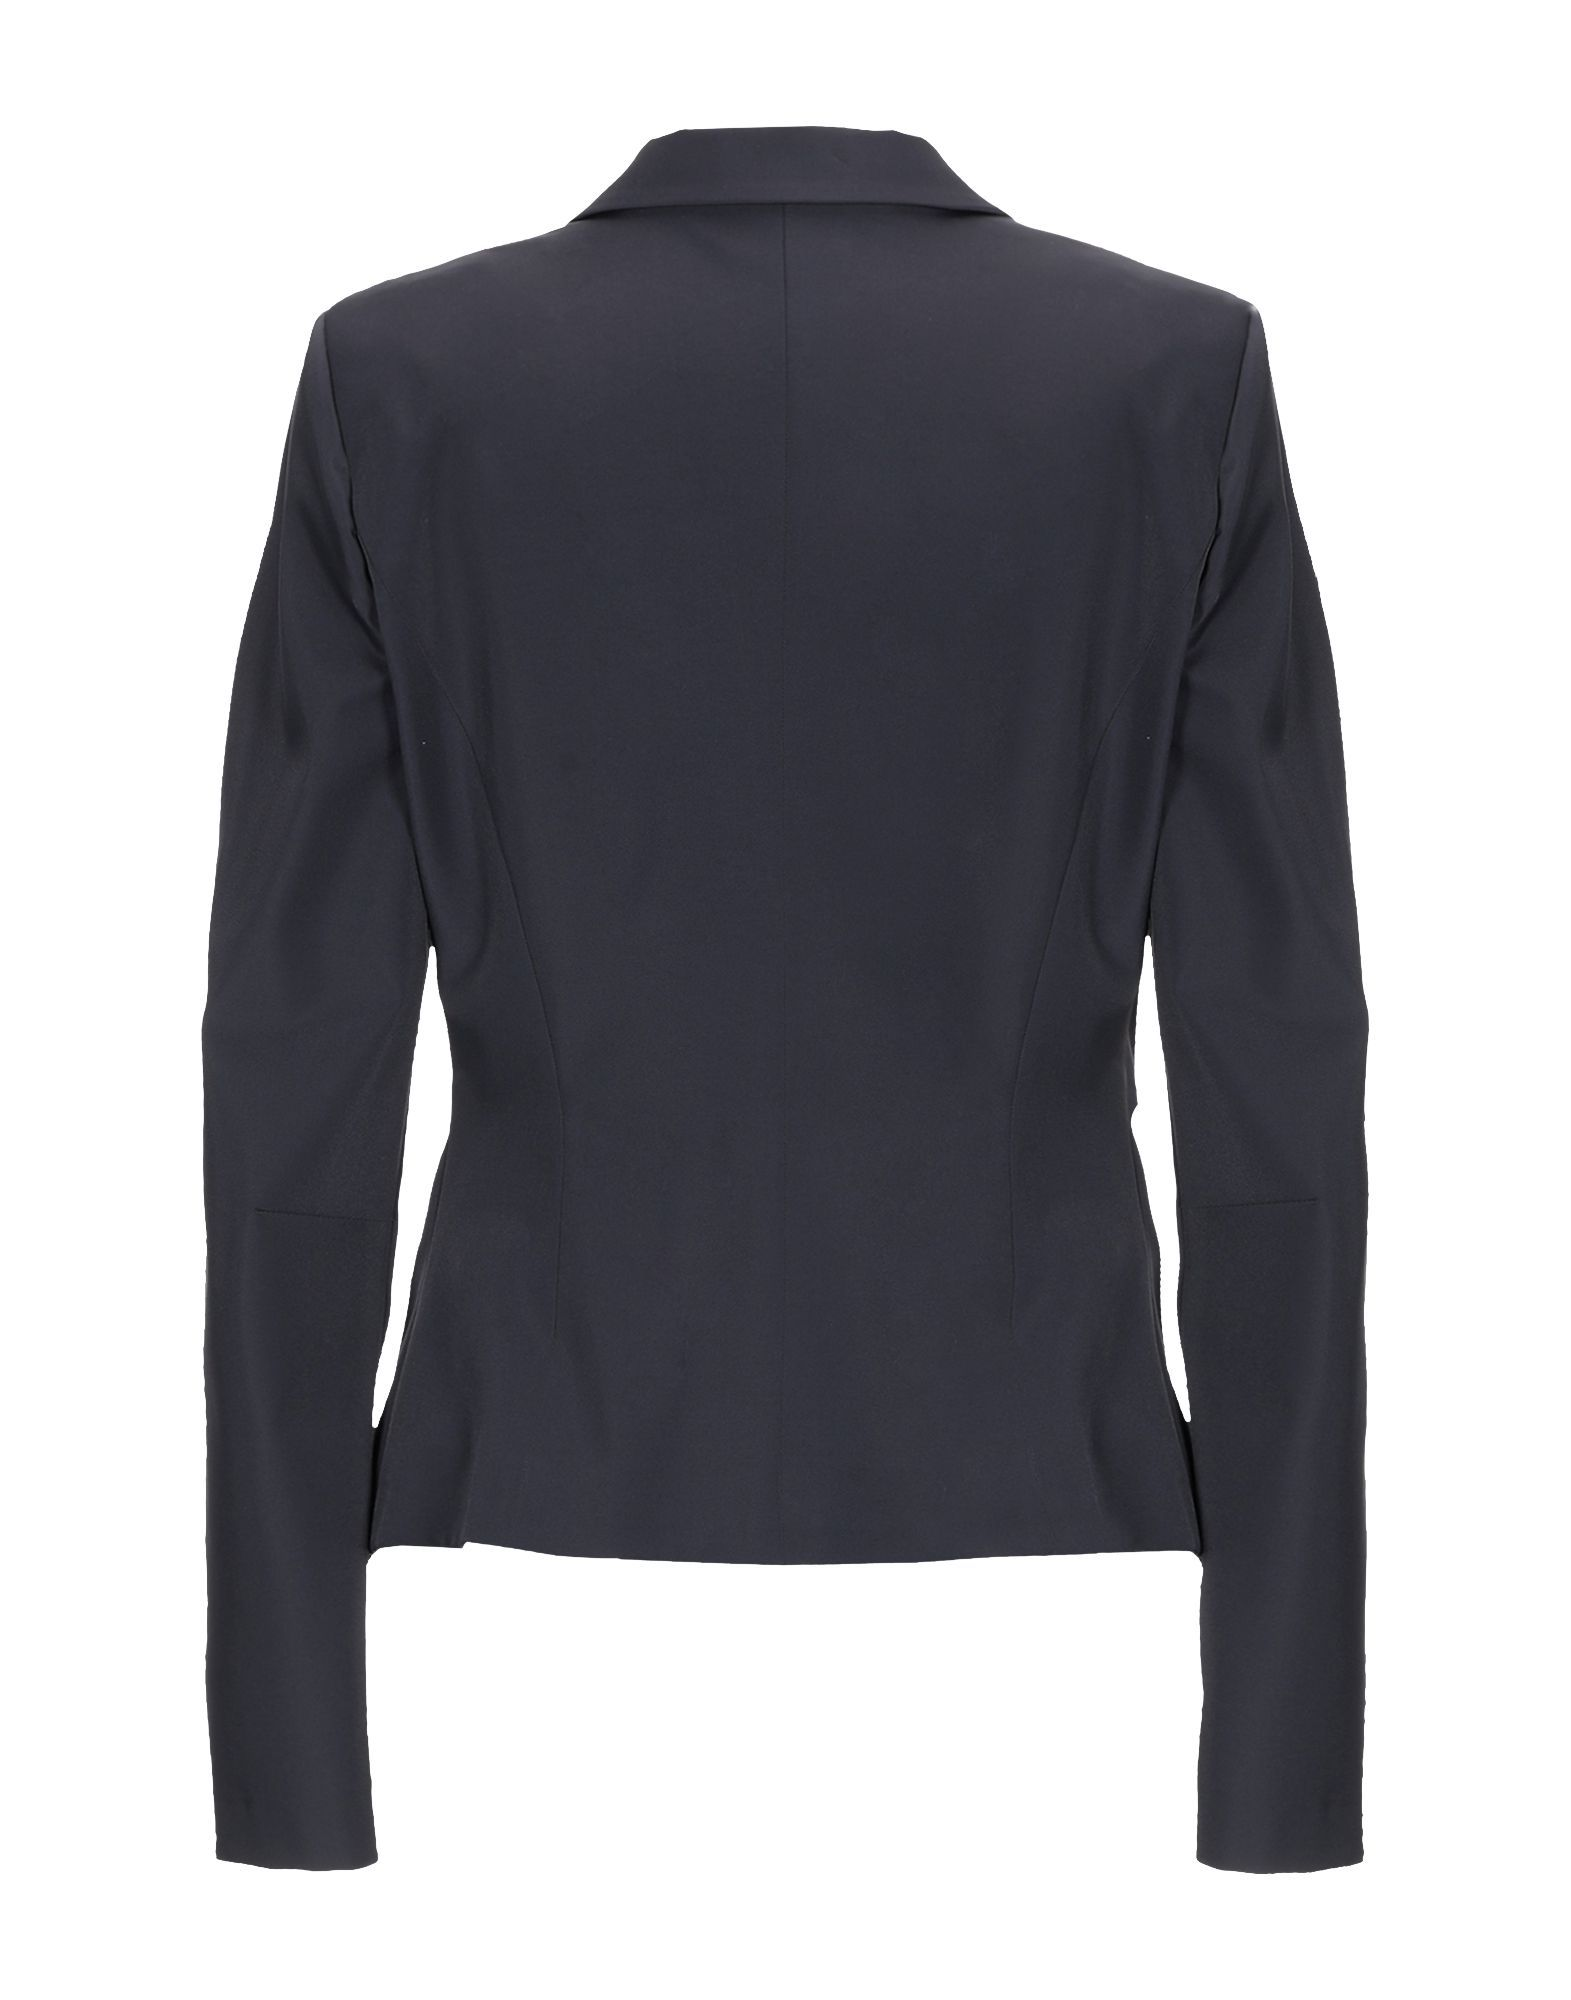 SUITS AND JACKETS Toy G. Steel grey Woman Viscose